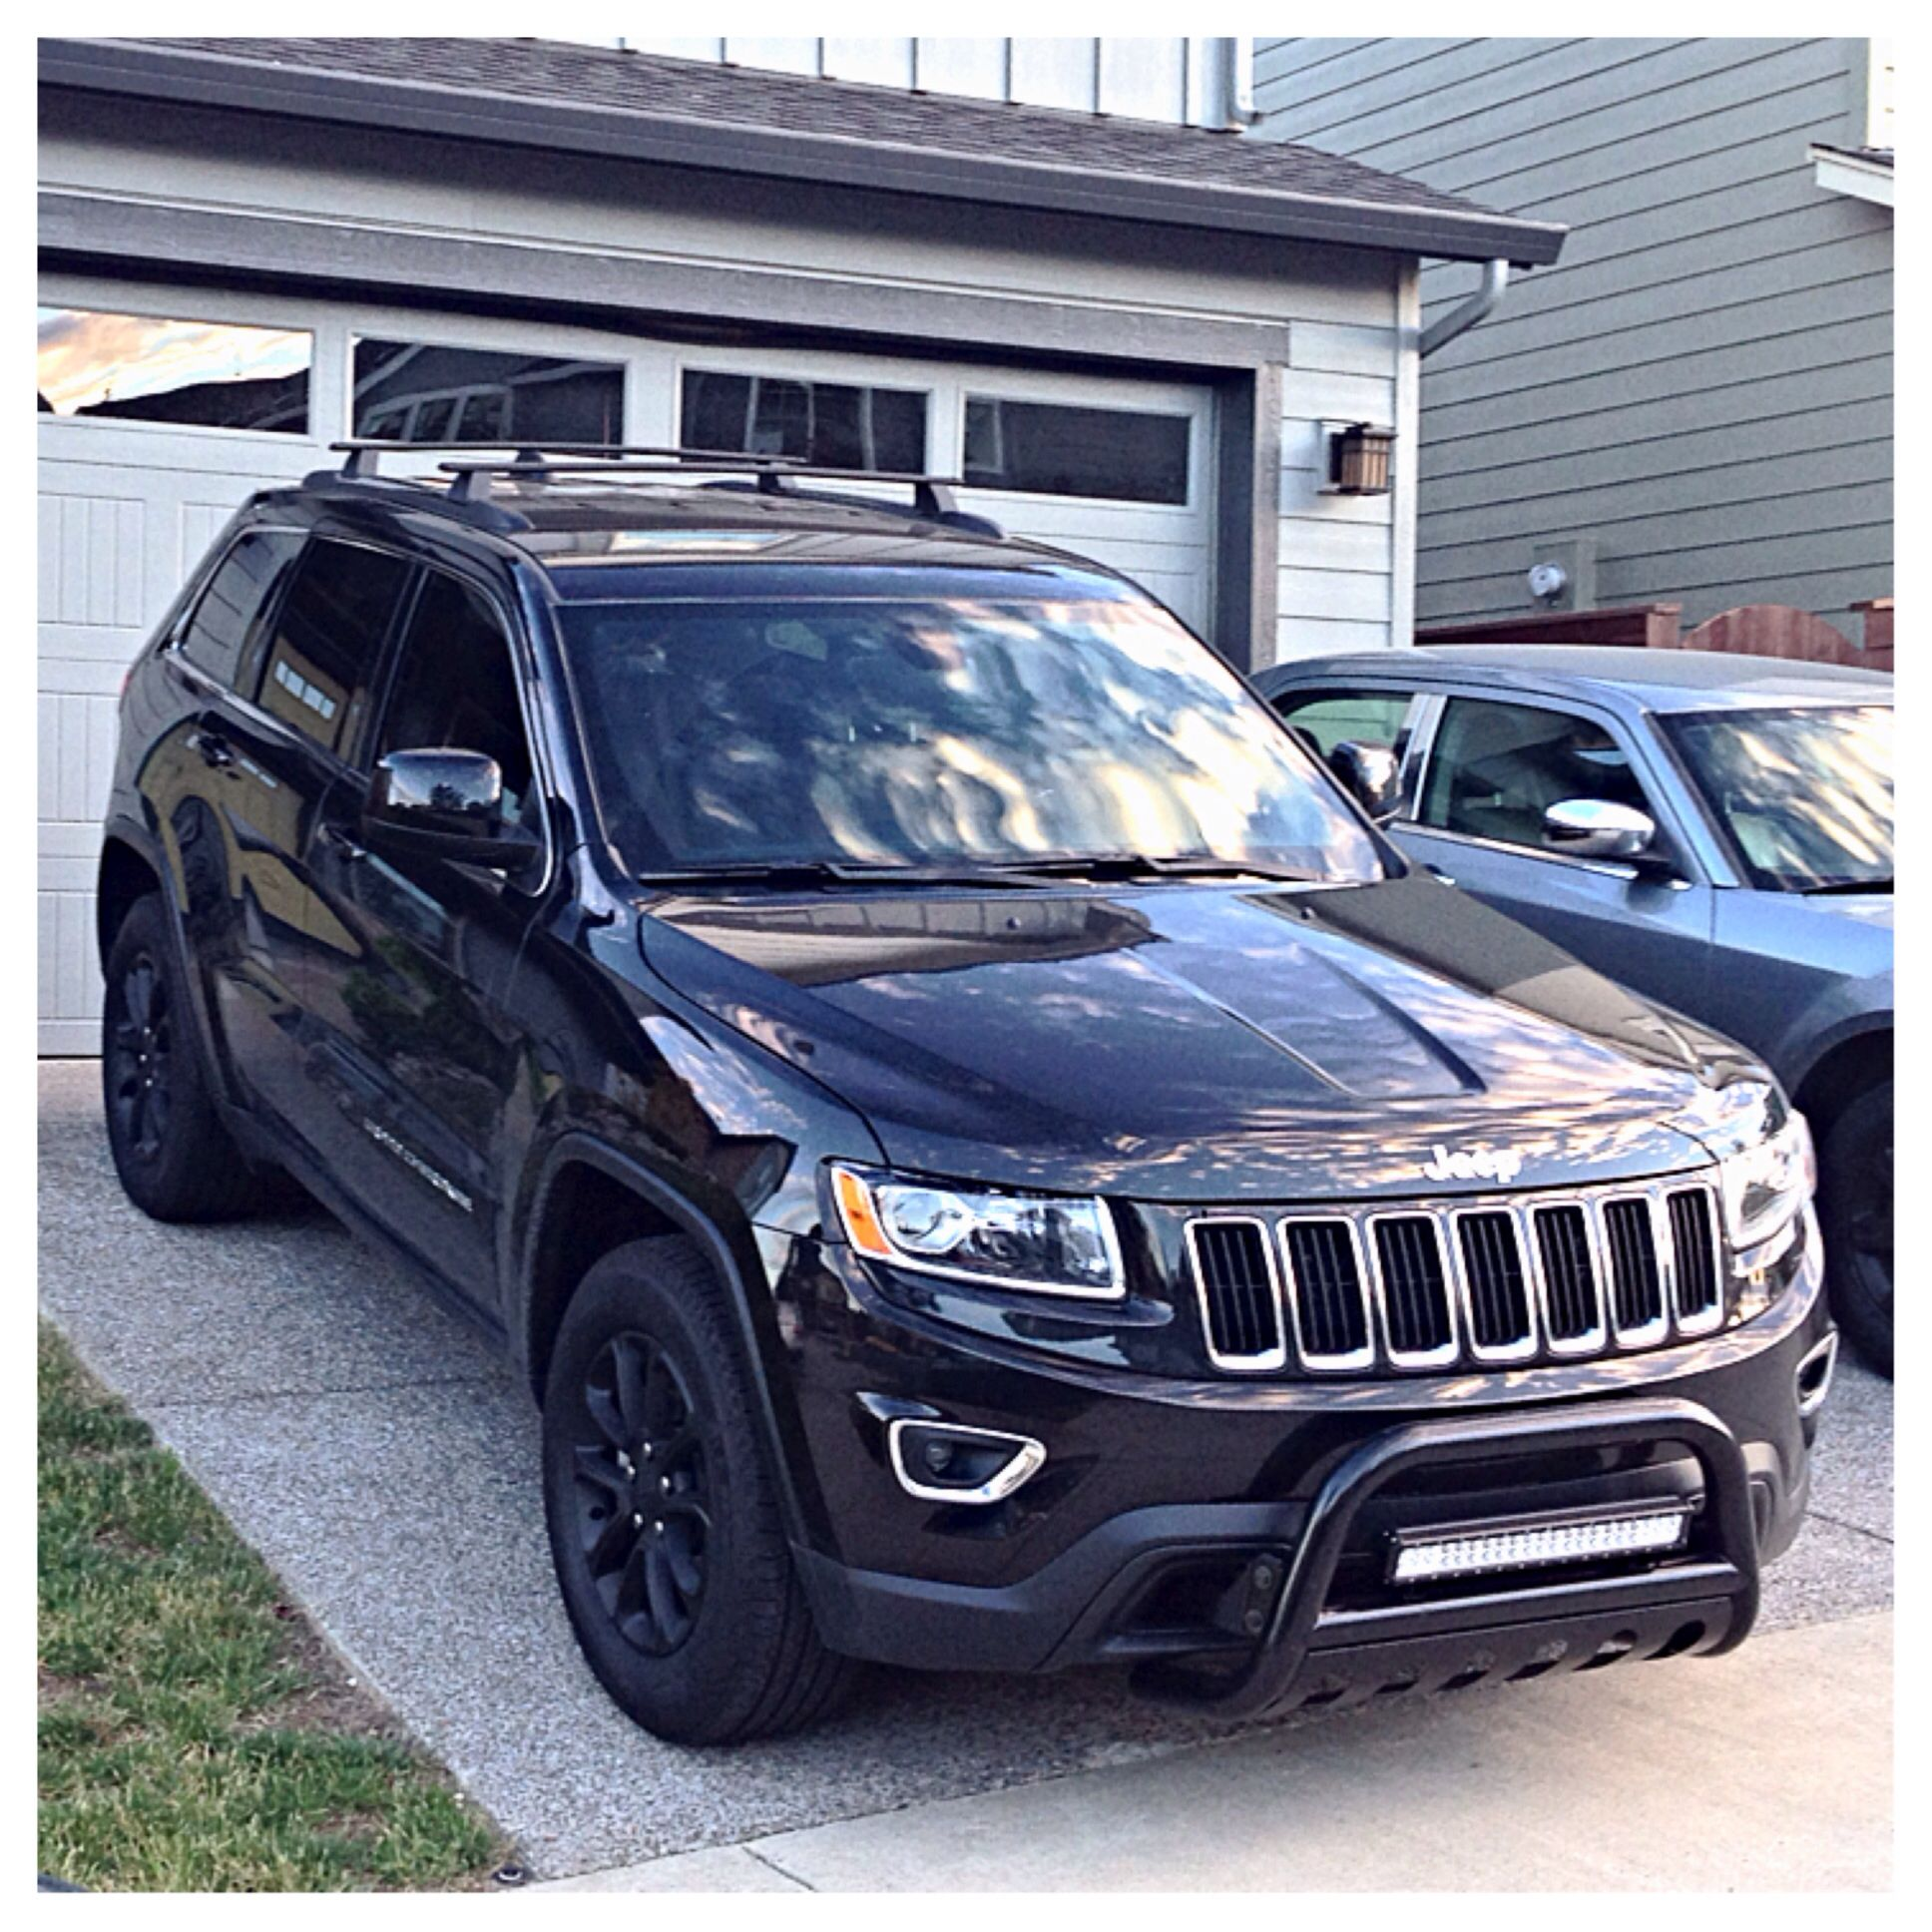 Best 25 jeep grand cherokee laredo ideas on pinterest jeep cherokee laredo jeep grand cherokee and jeep cherokee